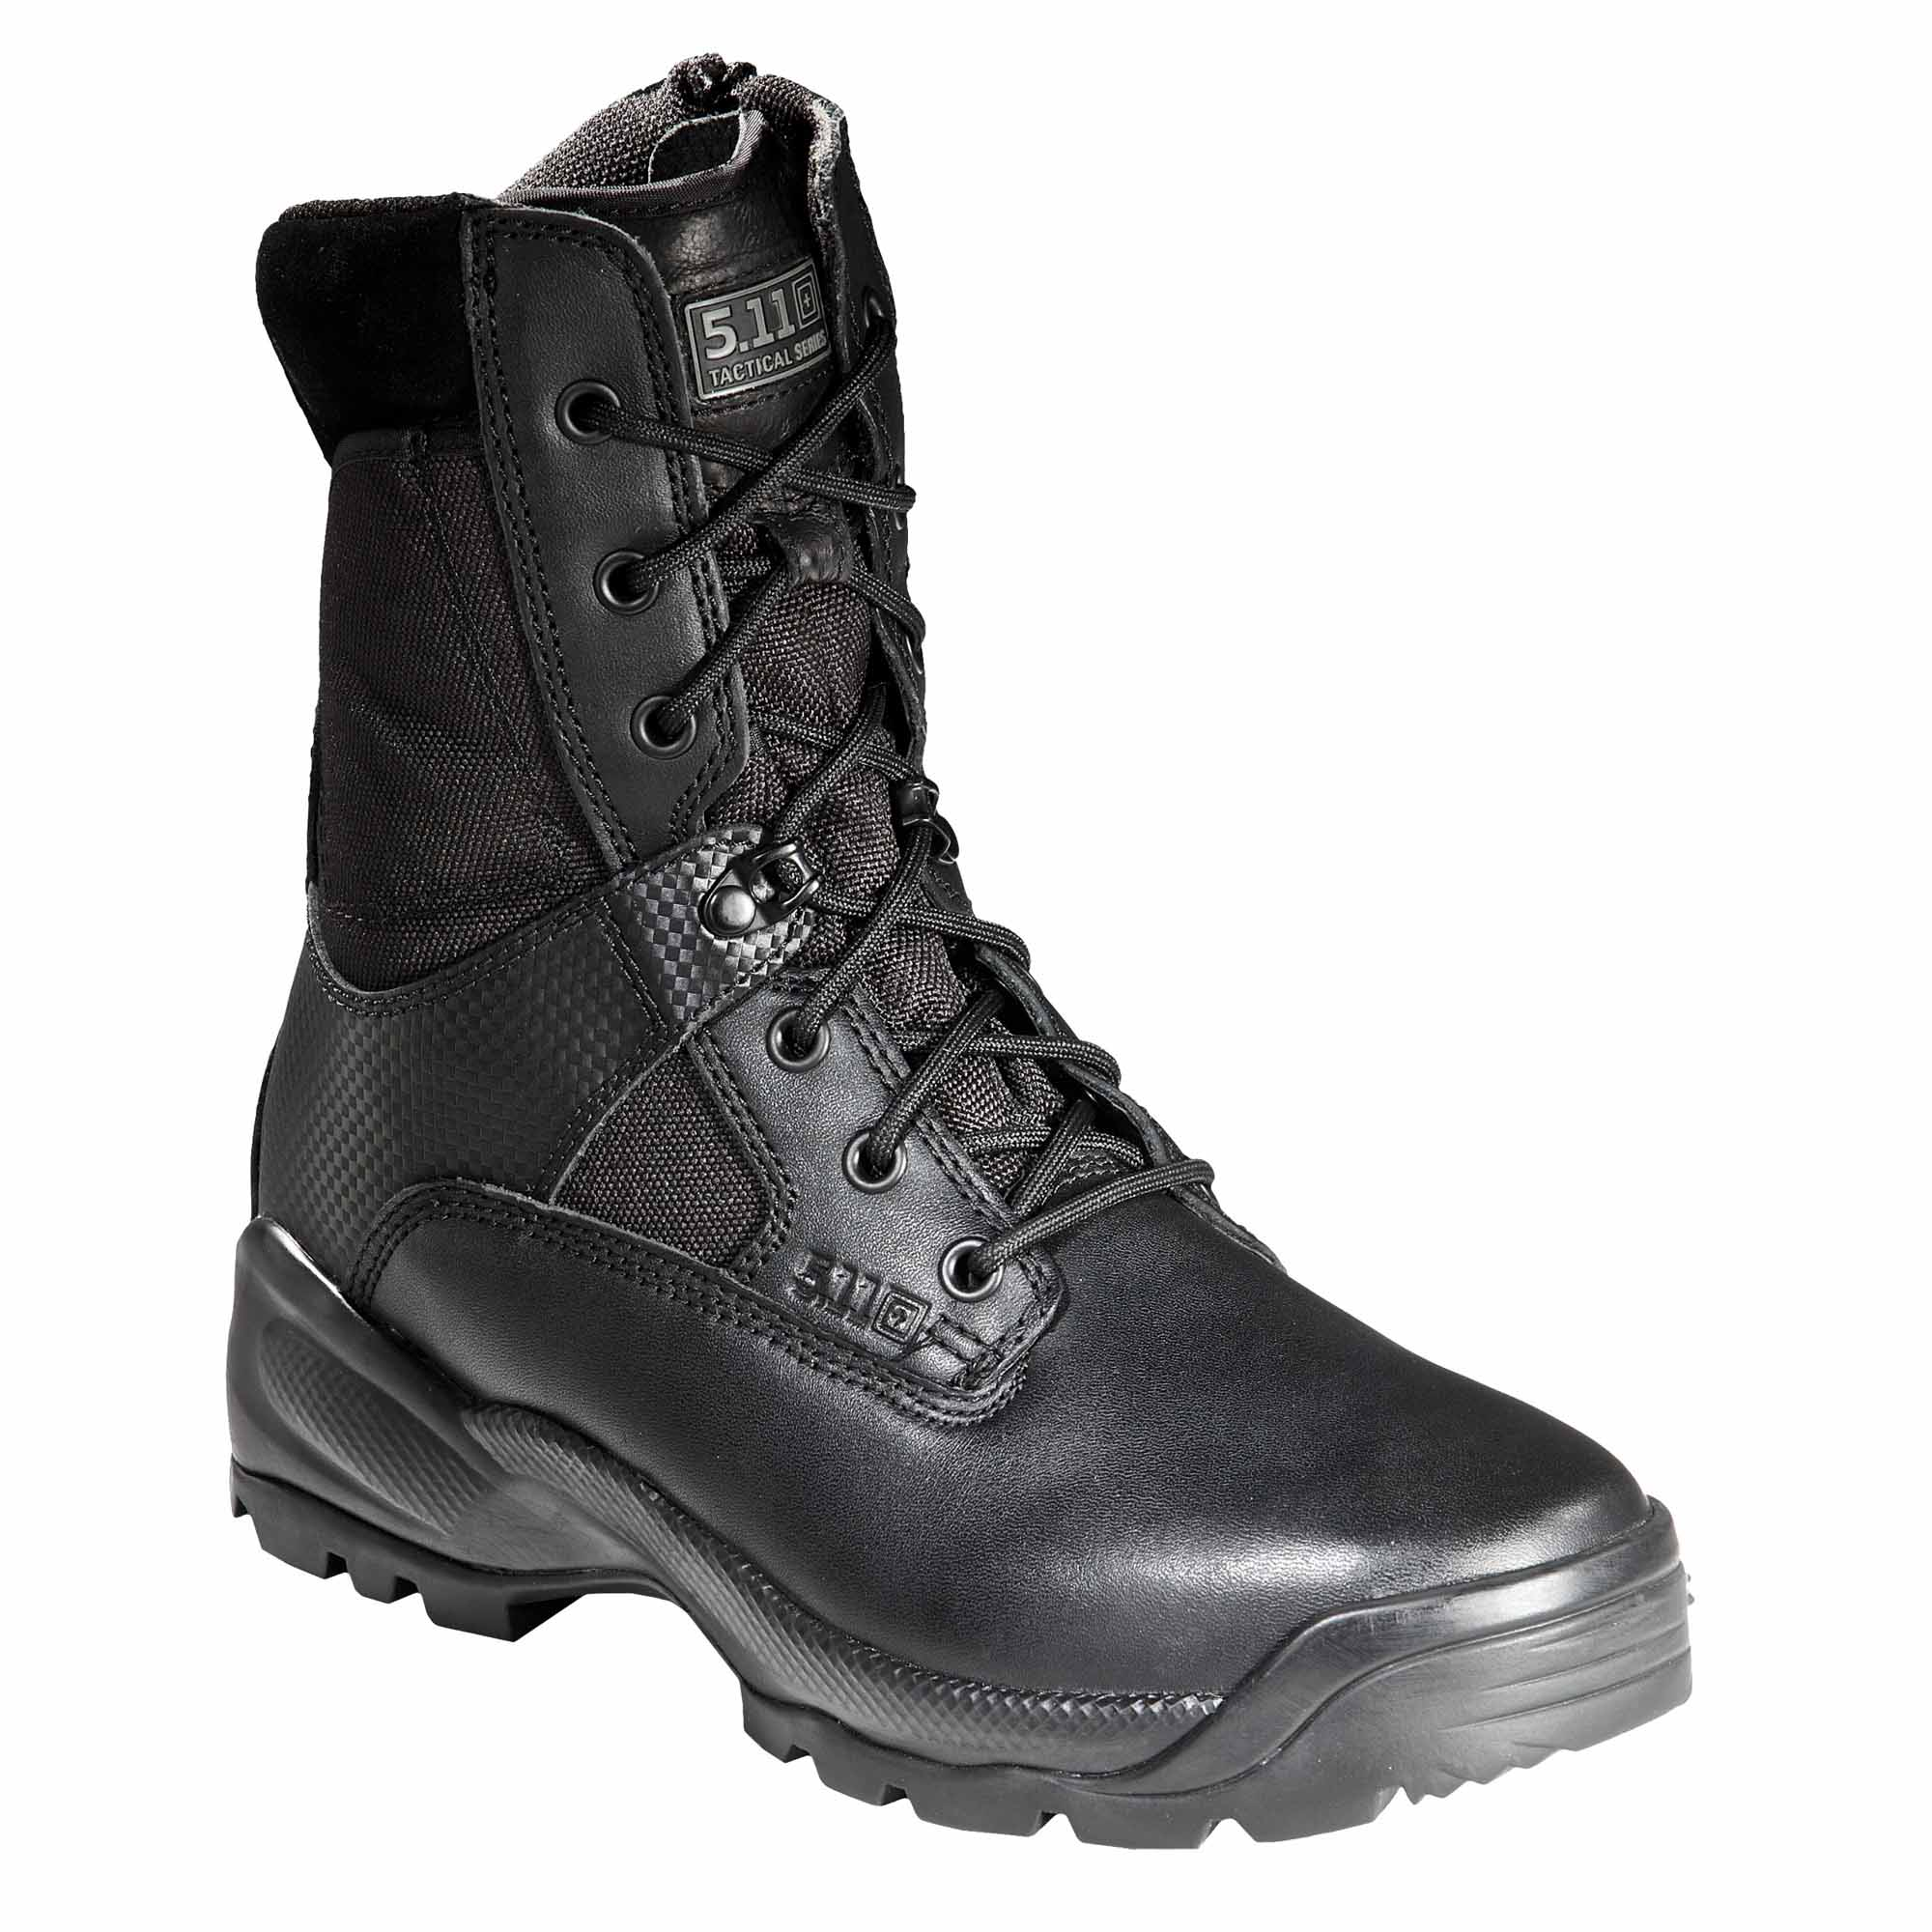 A.T.A.C. 8 Side Zip Boot-511